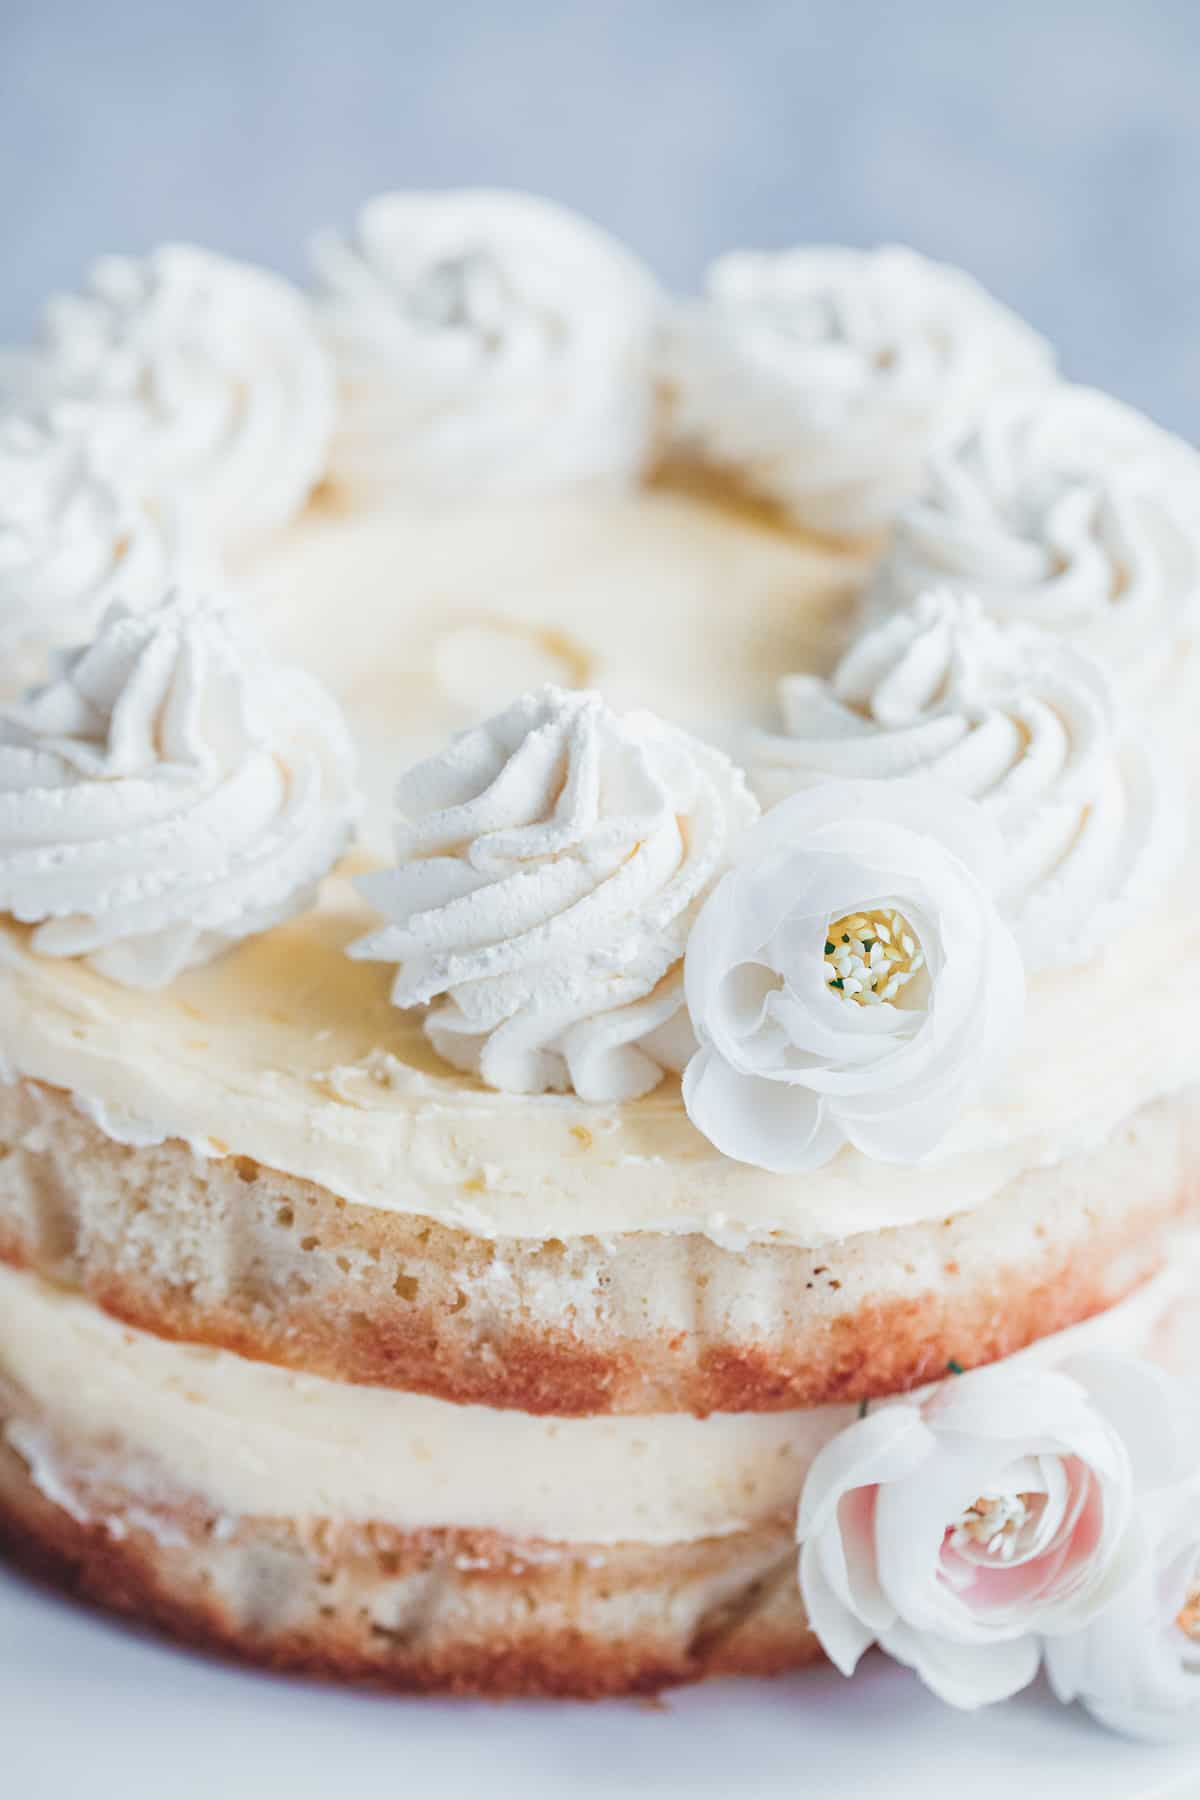 A cake frosted with lemon buttercream.